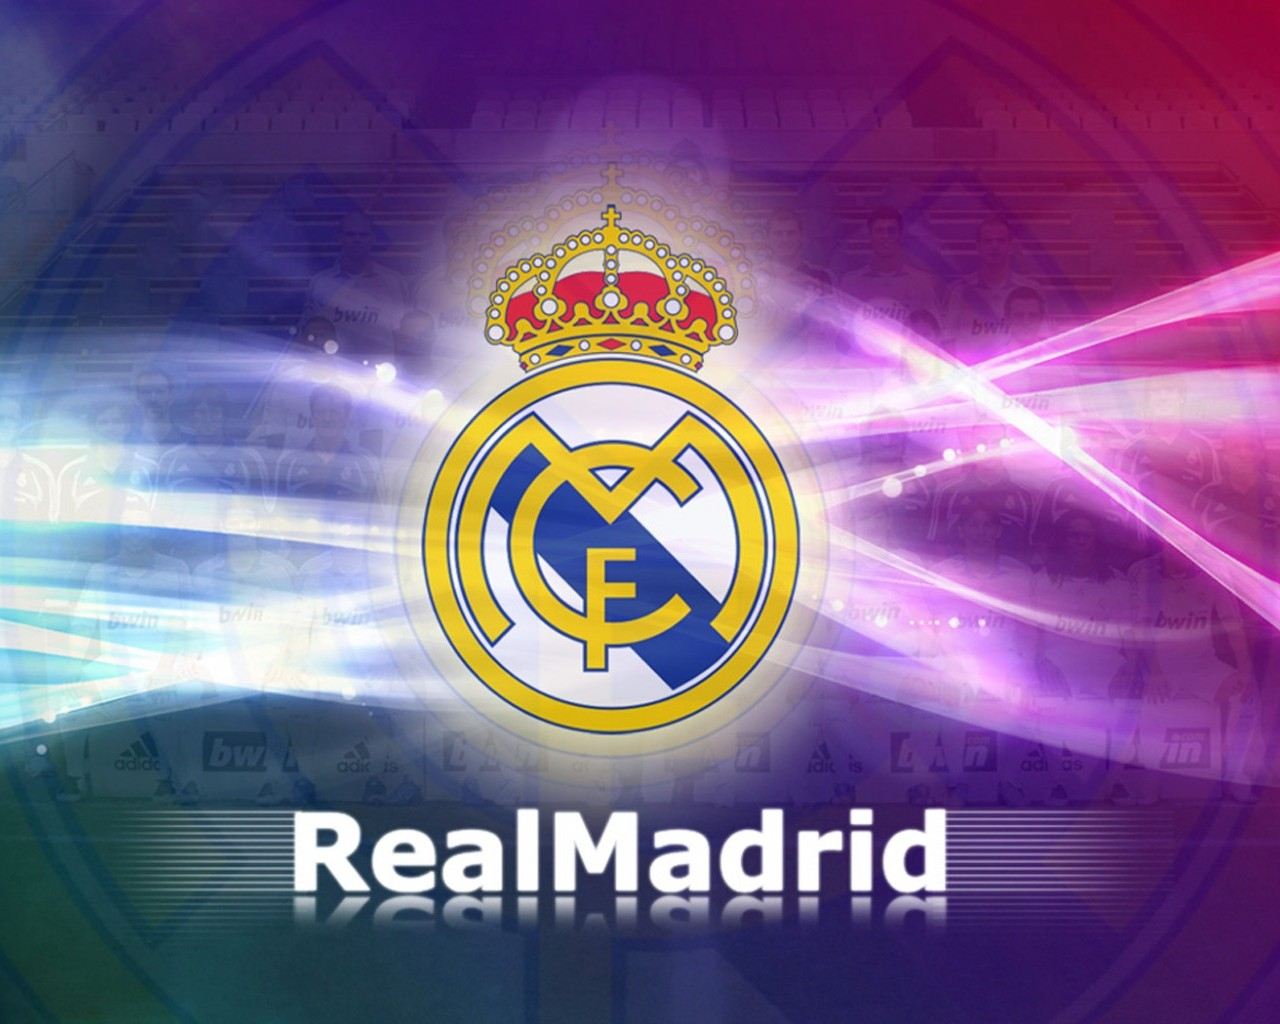 Real Madrid CF Club S10